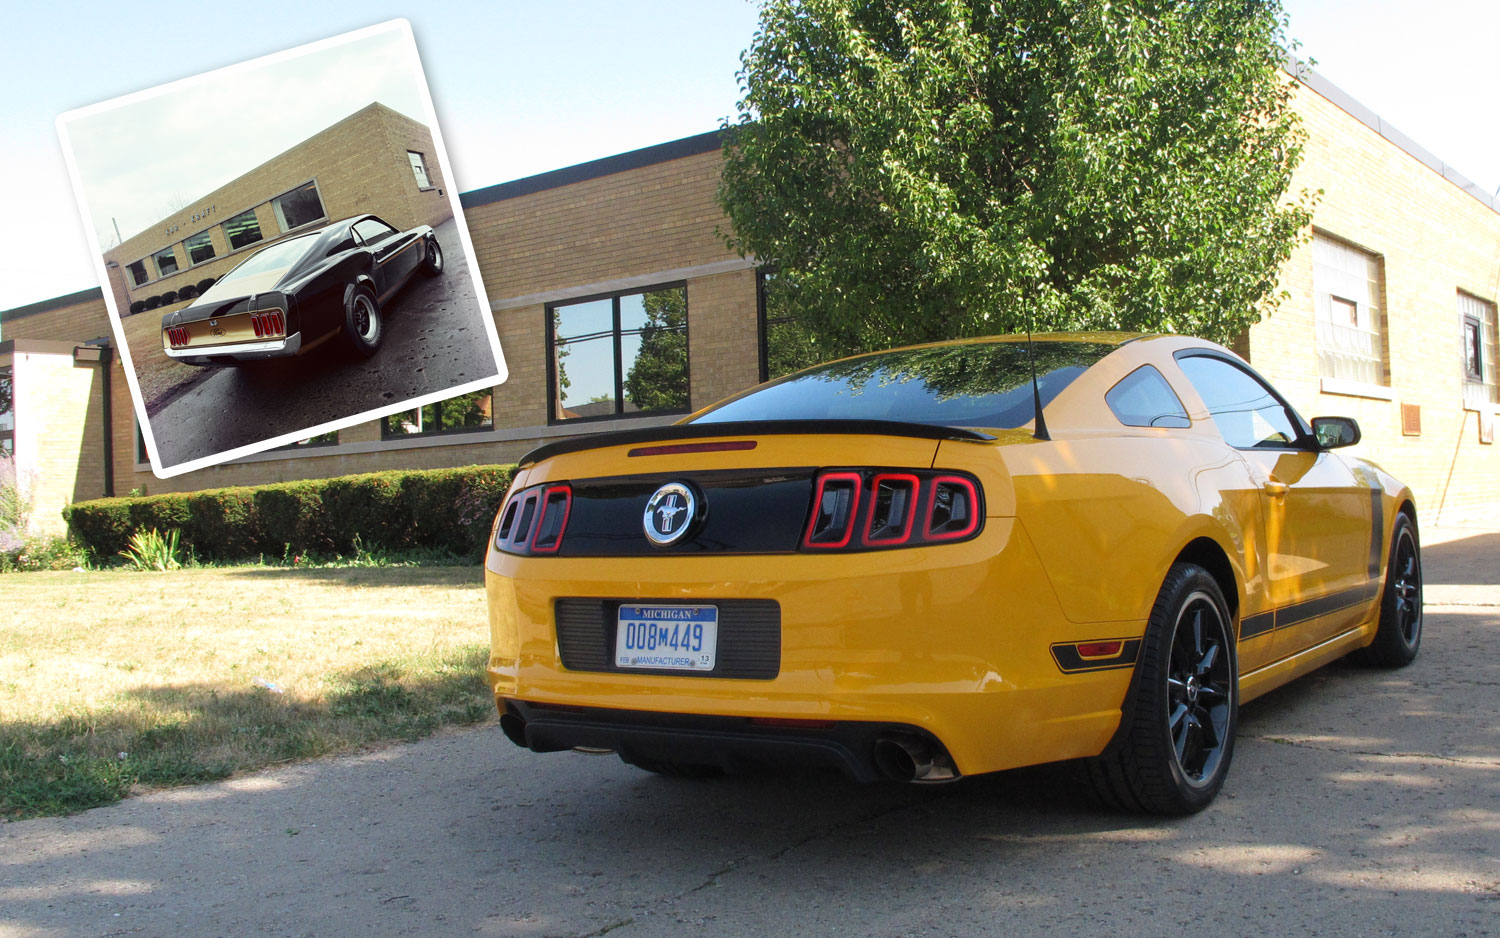 2013 Ford Mustang Boss 302 At Kar Kraft Facility Lead Image1